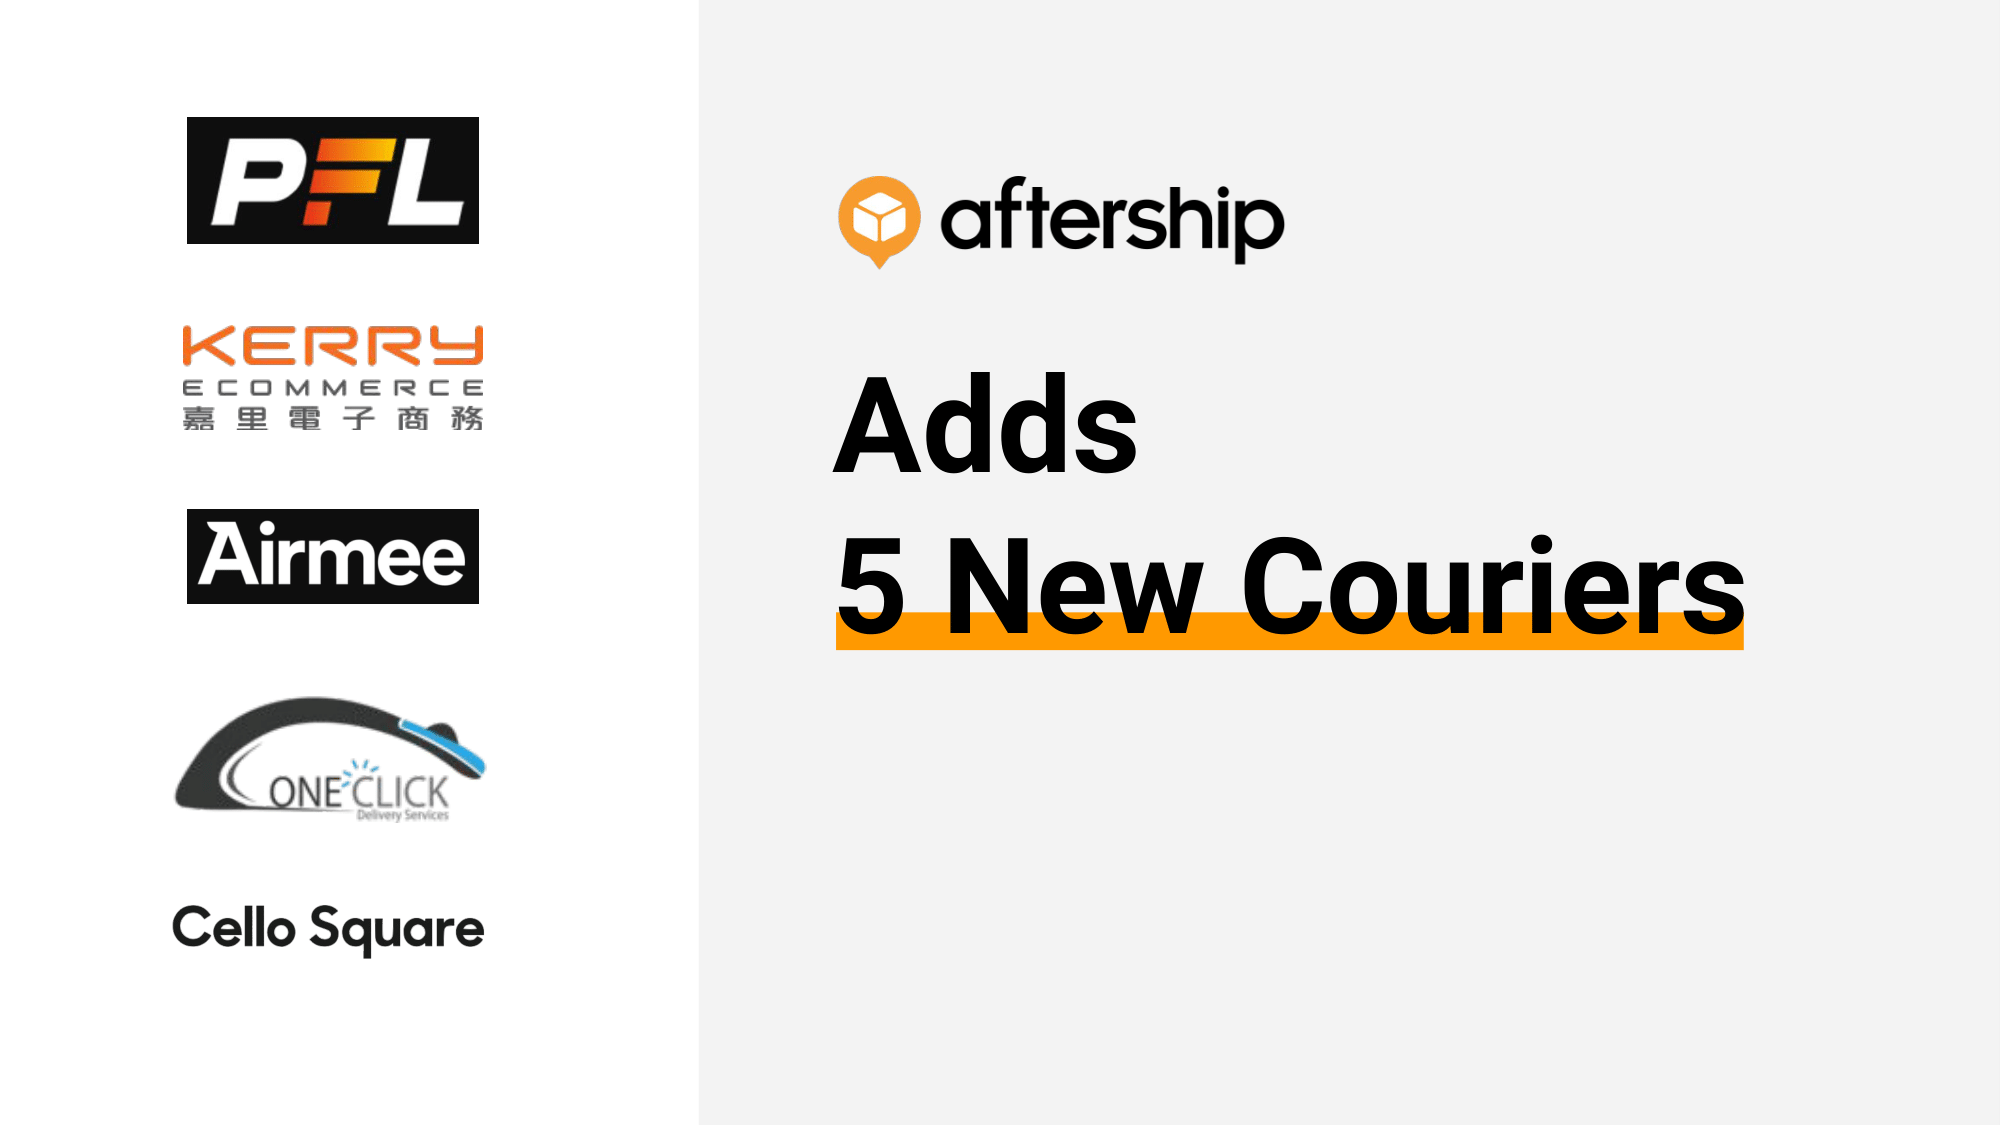 AfterShip adds 5 new couriers this week  (6 July 2020 to 10 July 2020)